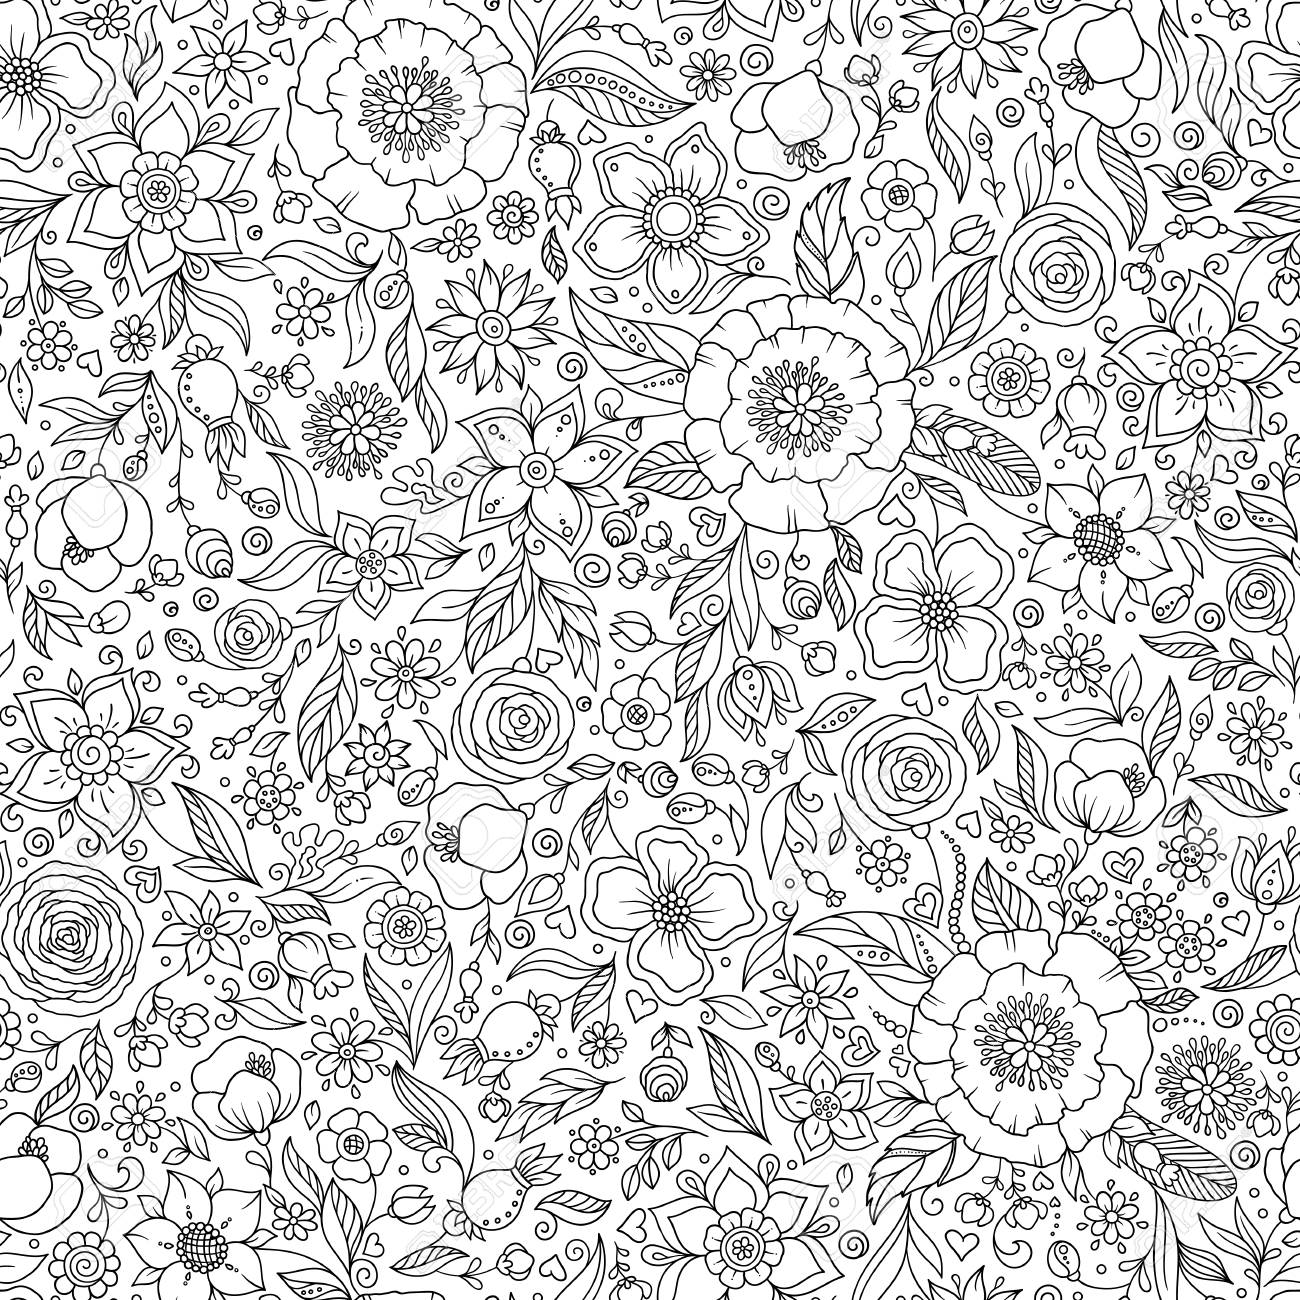 Floral seamless pattern  Zentangle doodle background  Black and